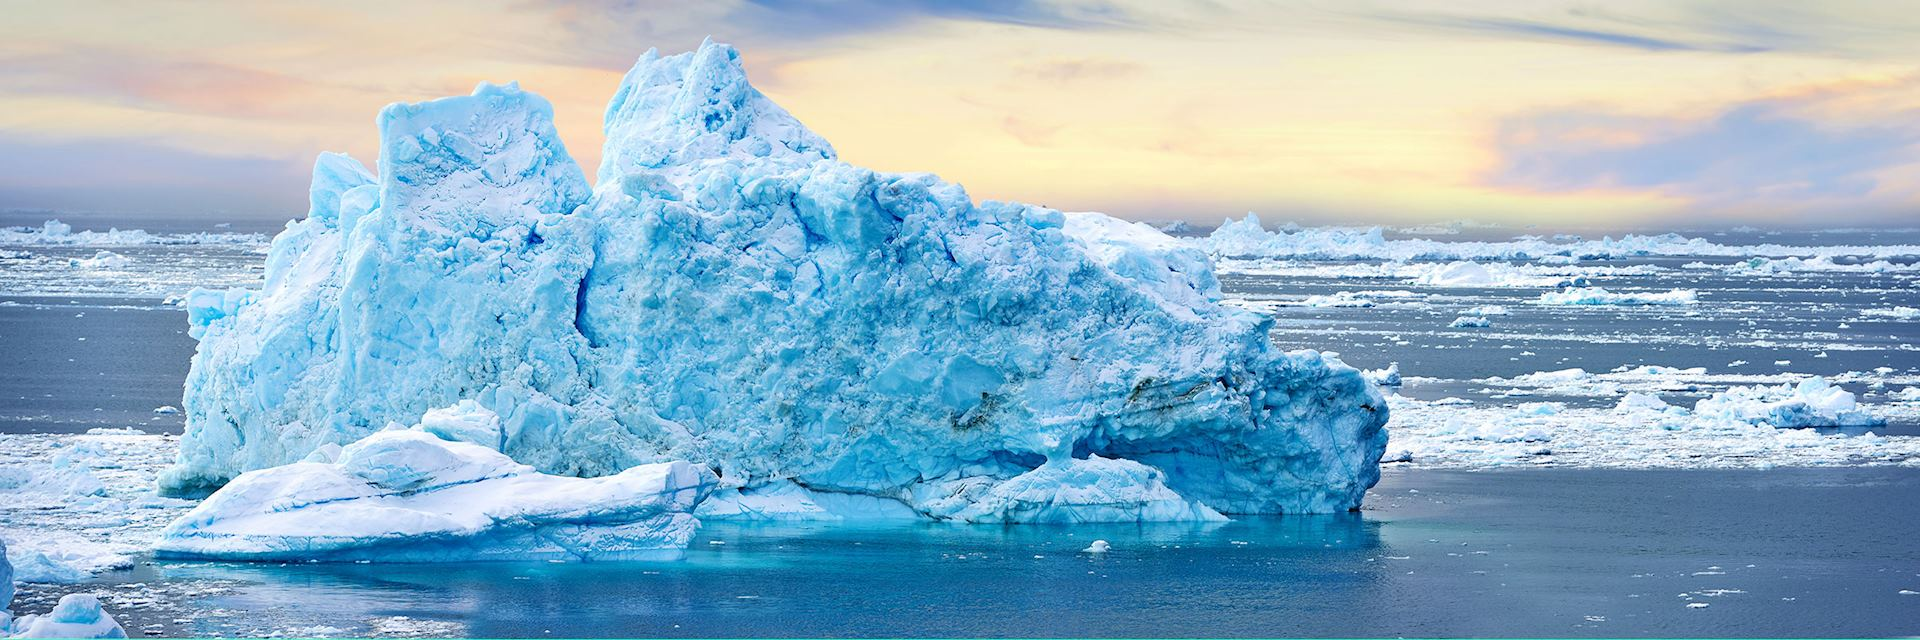 Ice formation in Greenland